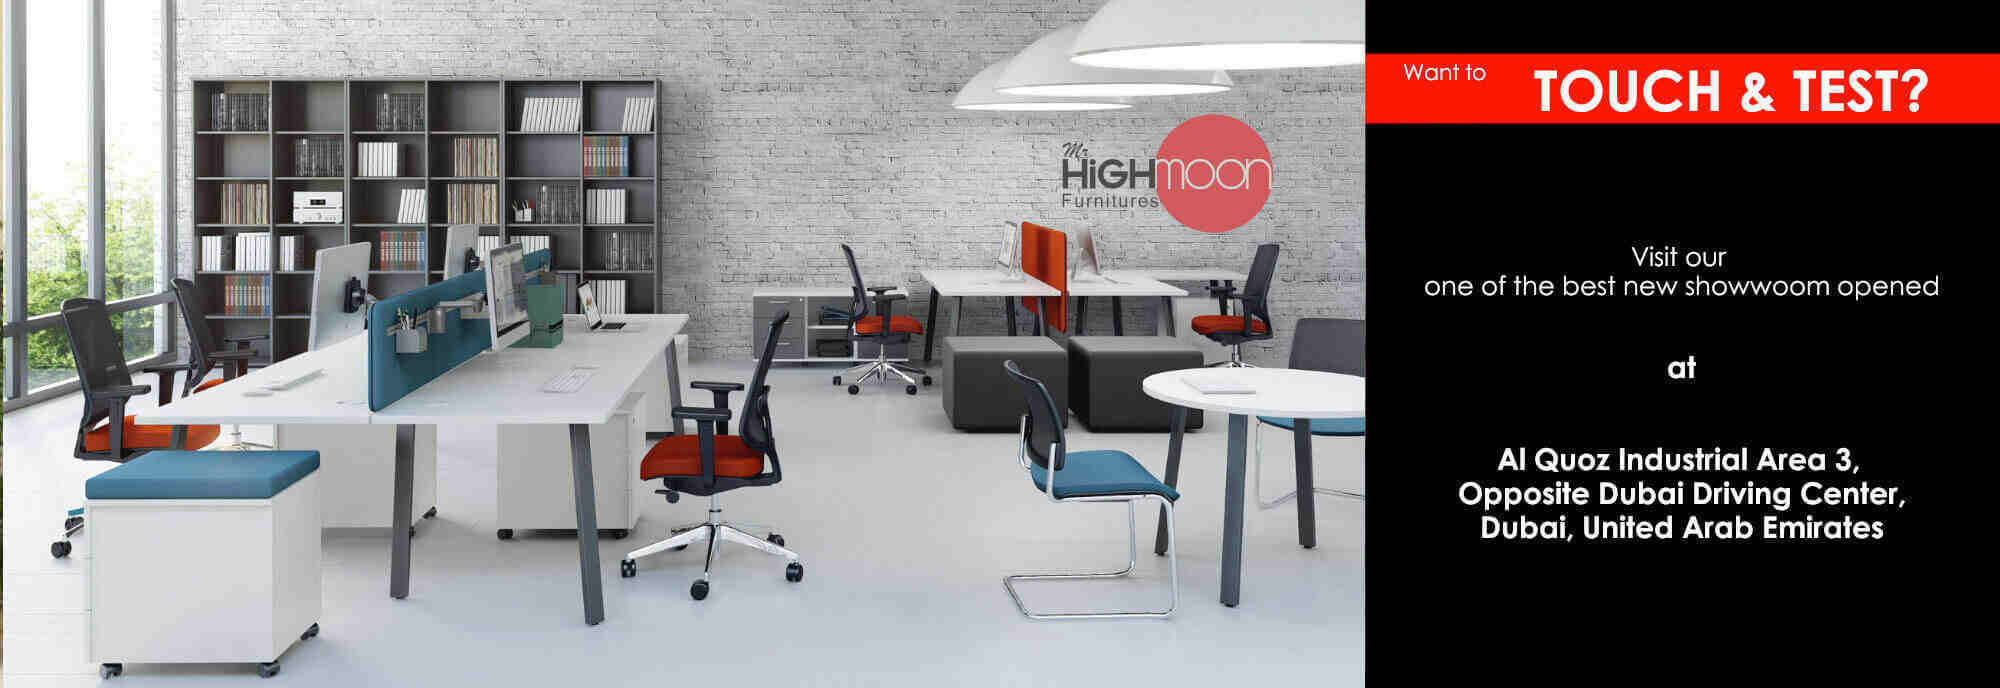 New Branch Opened at Al quoz 3 - Mr Highmoon Furniture Dubai